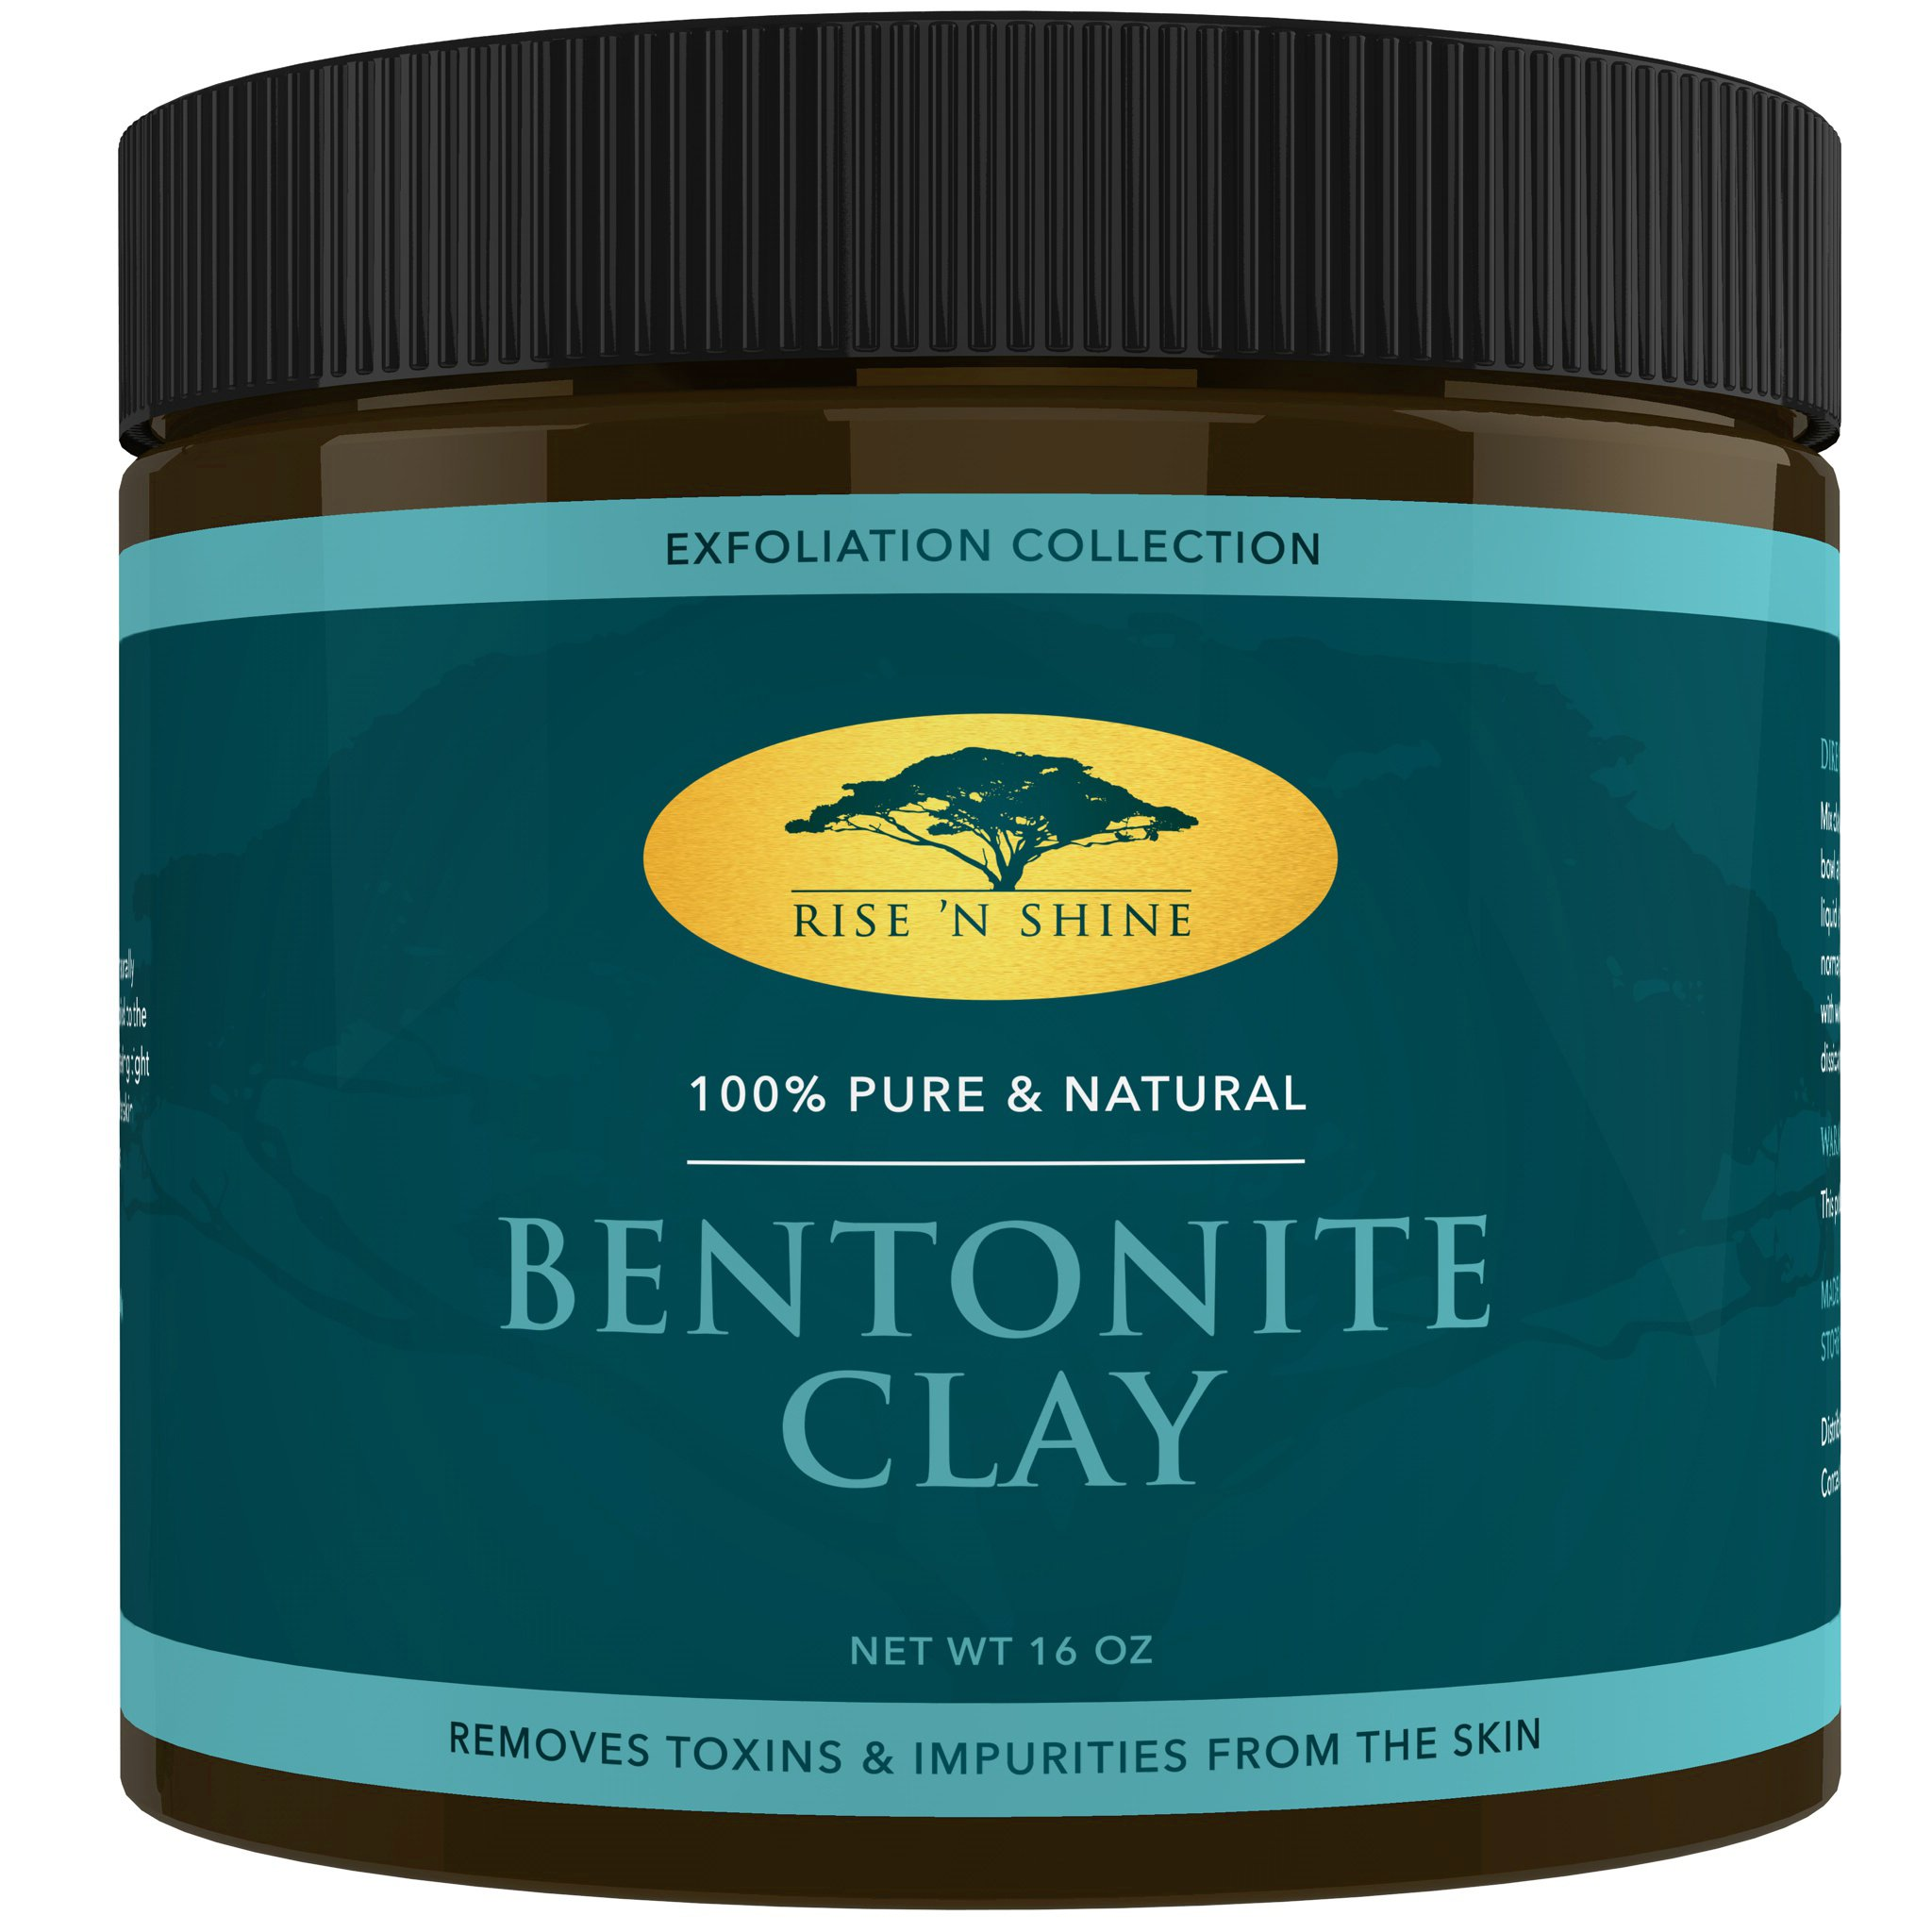 (16 oz) Bentonite Clay Powder - 100% All Natural Face Mask Detox, Skin Pore Cleansing and Rejuvenates Skin and Hair - Helps Acne Psoriasis and Eczema - Pure Sodium Bentonite from Wyoming